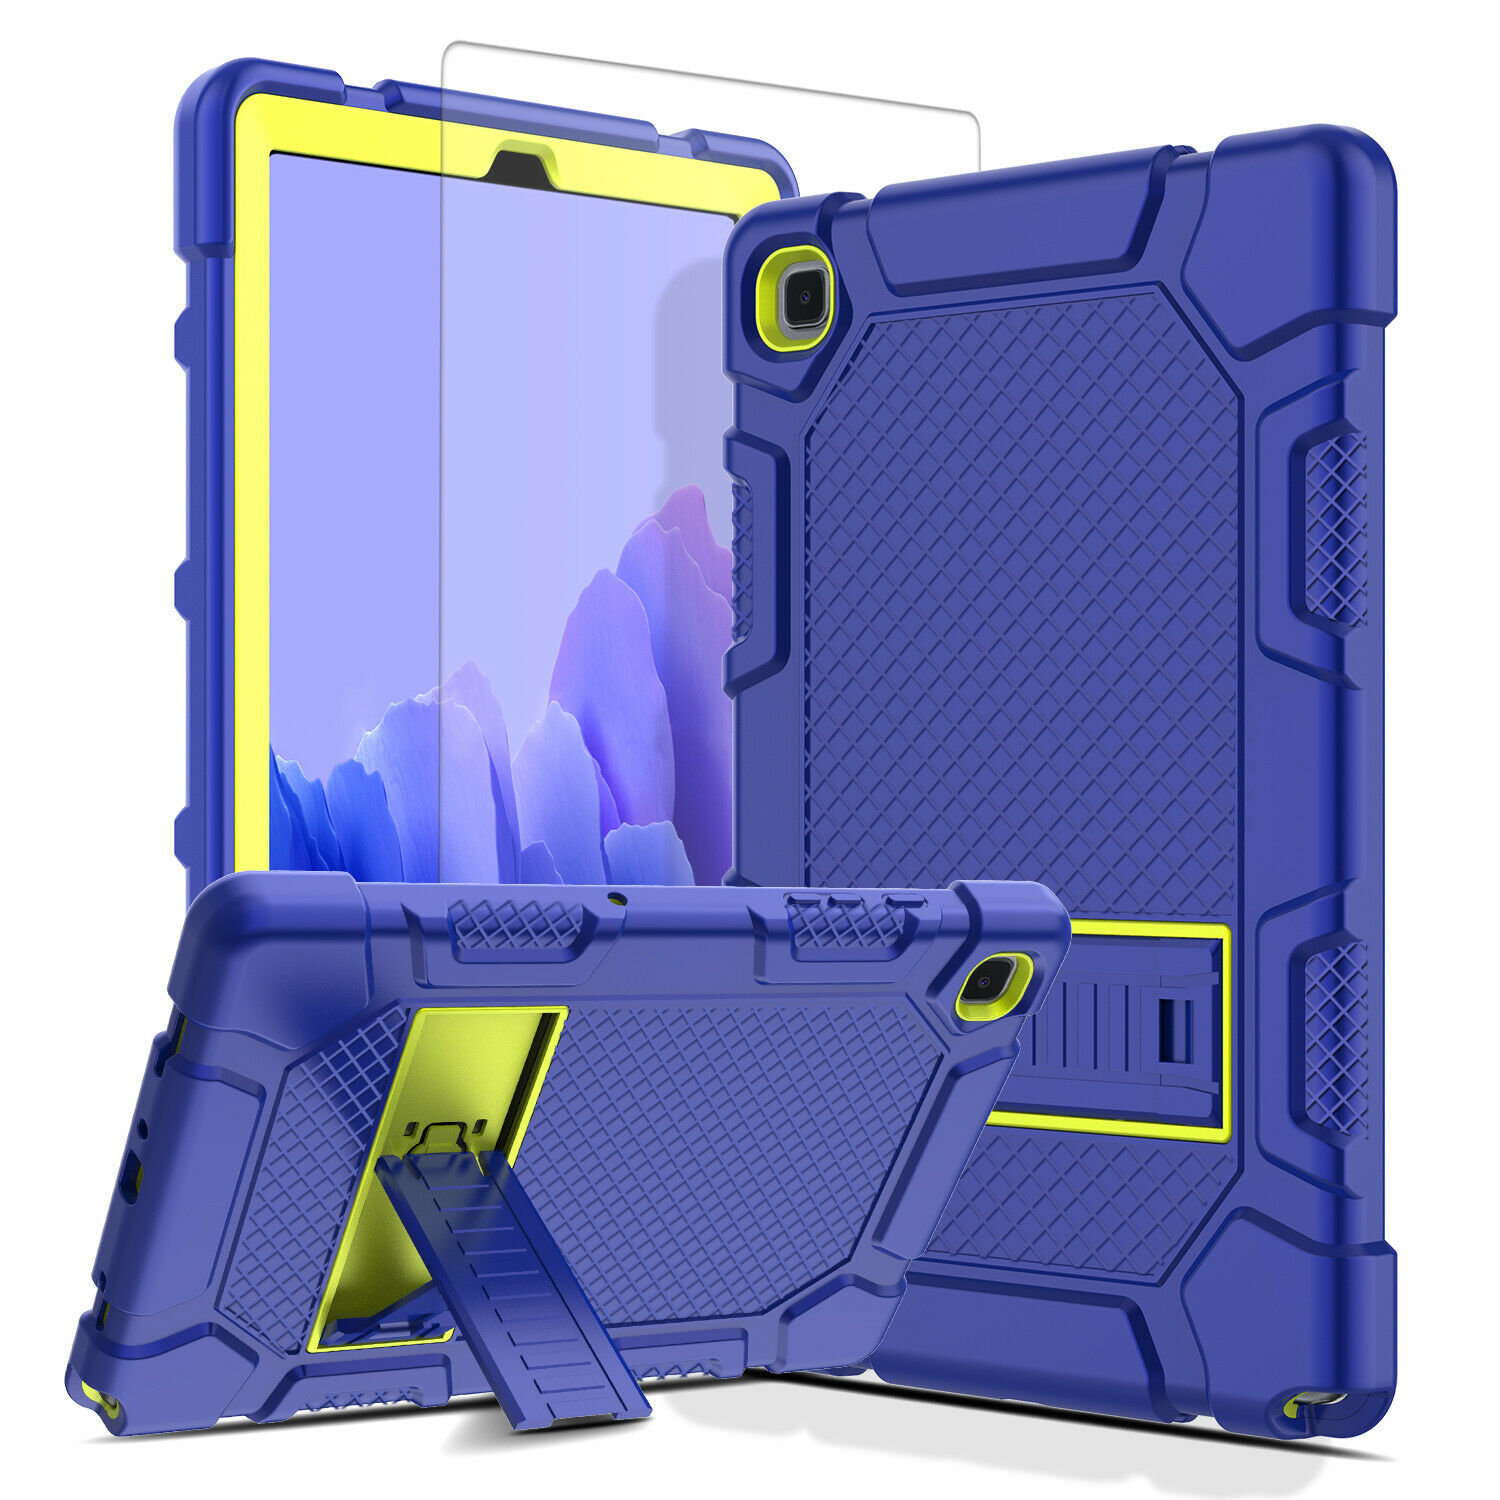 """For Samsung Galaxy Tab A7 10.4"""" 2020 Tablet Case Stand Cover+Screen Protector Cases, Covers, Keyboard Folios"""